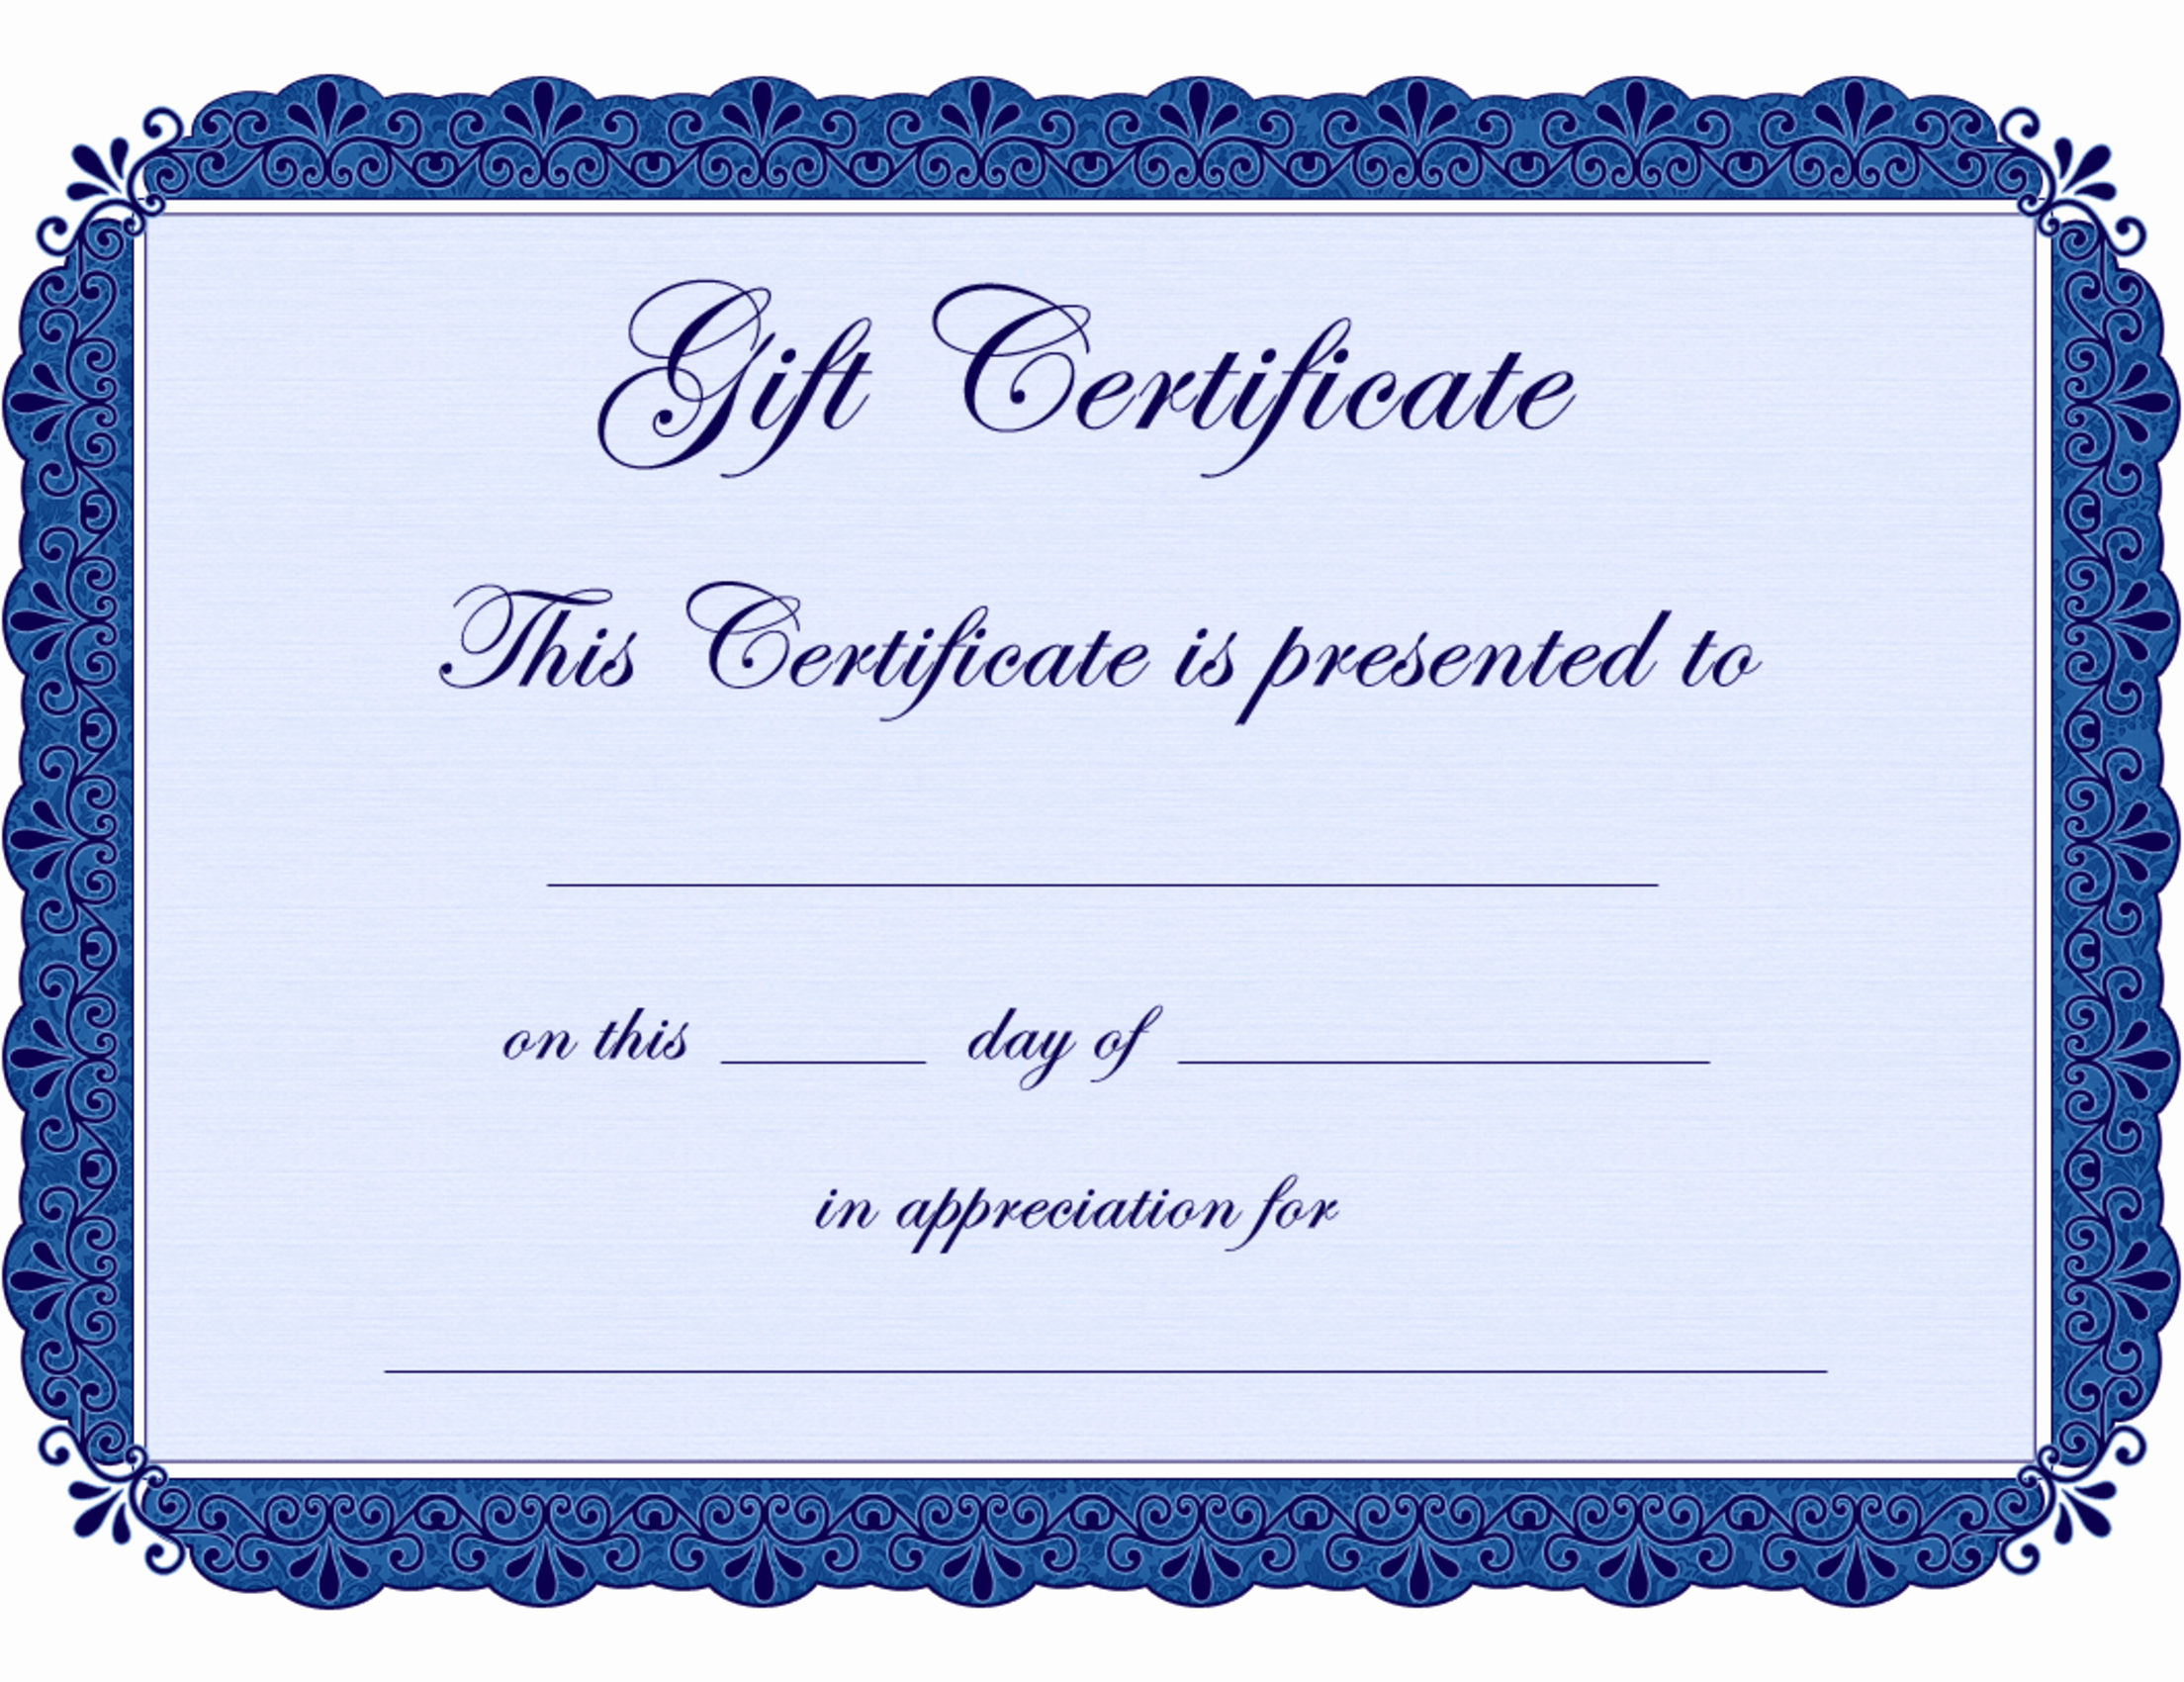 Gift Certificate Template Microsoft Word Elegant Free Certificate Borders for Word Clipart Best